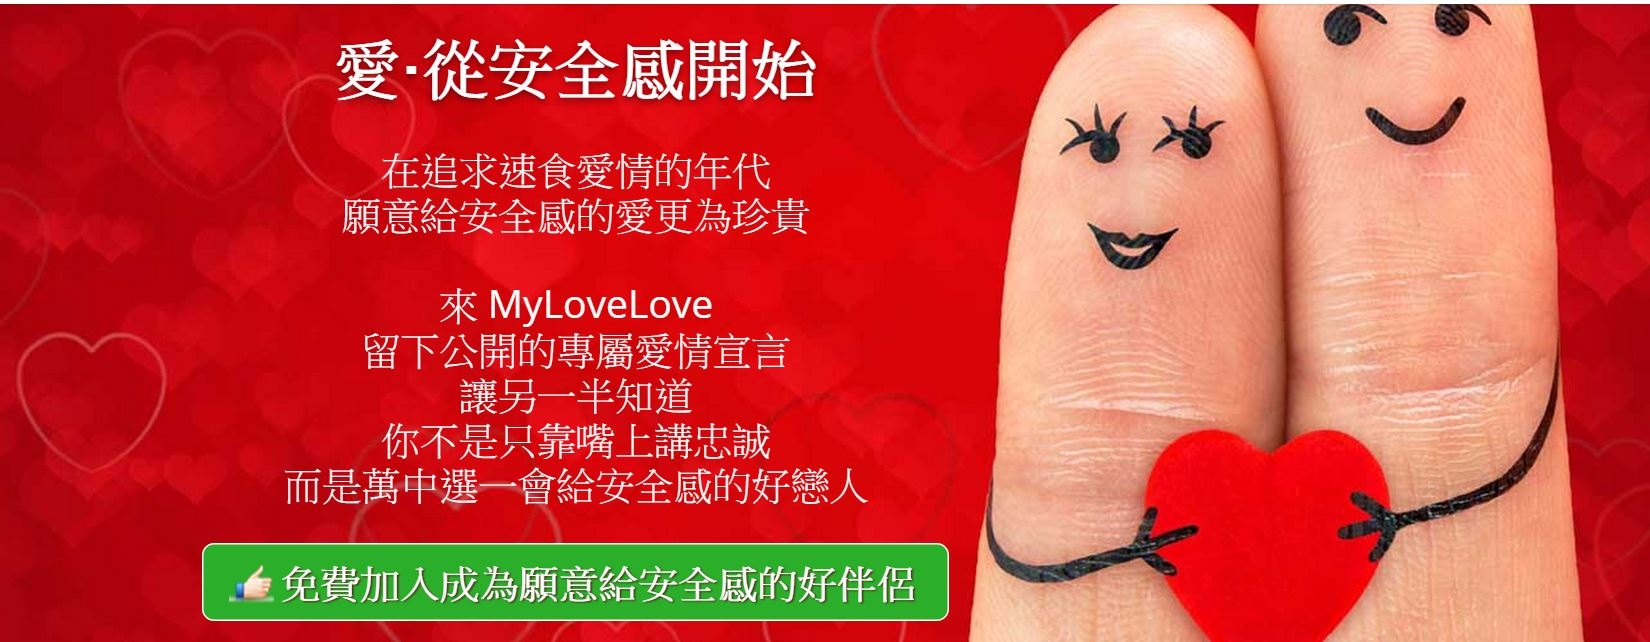 ♥感情♥▋MyLoveLove 小三退散減少無辜第三者 ▋多了信任開始相信愛情~文末有FB好康贈獎